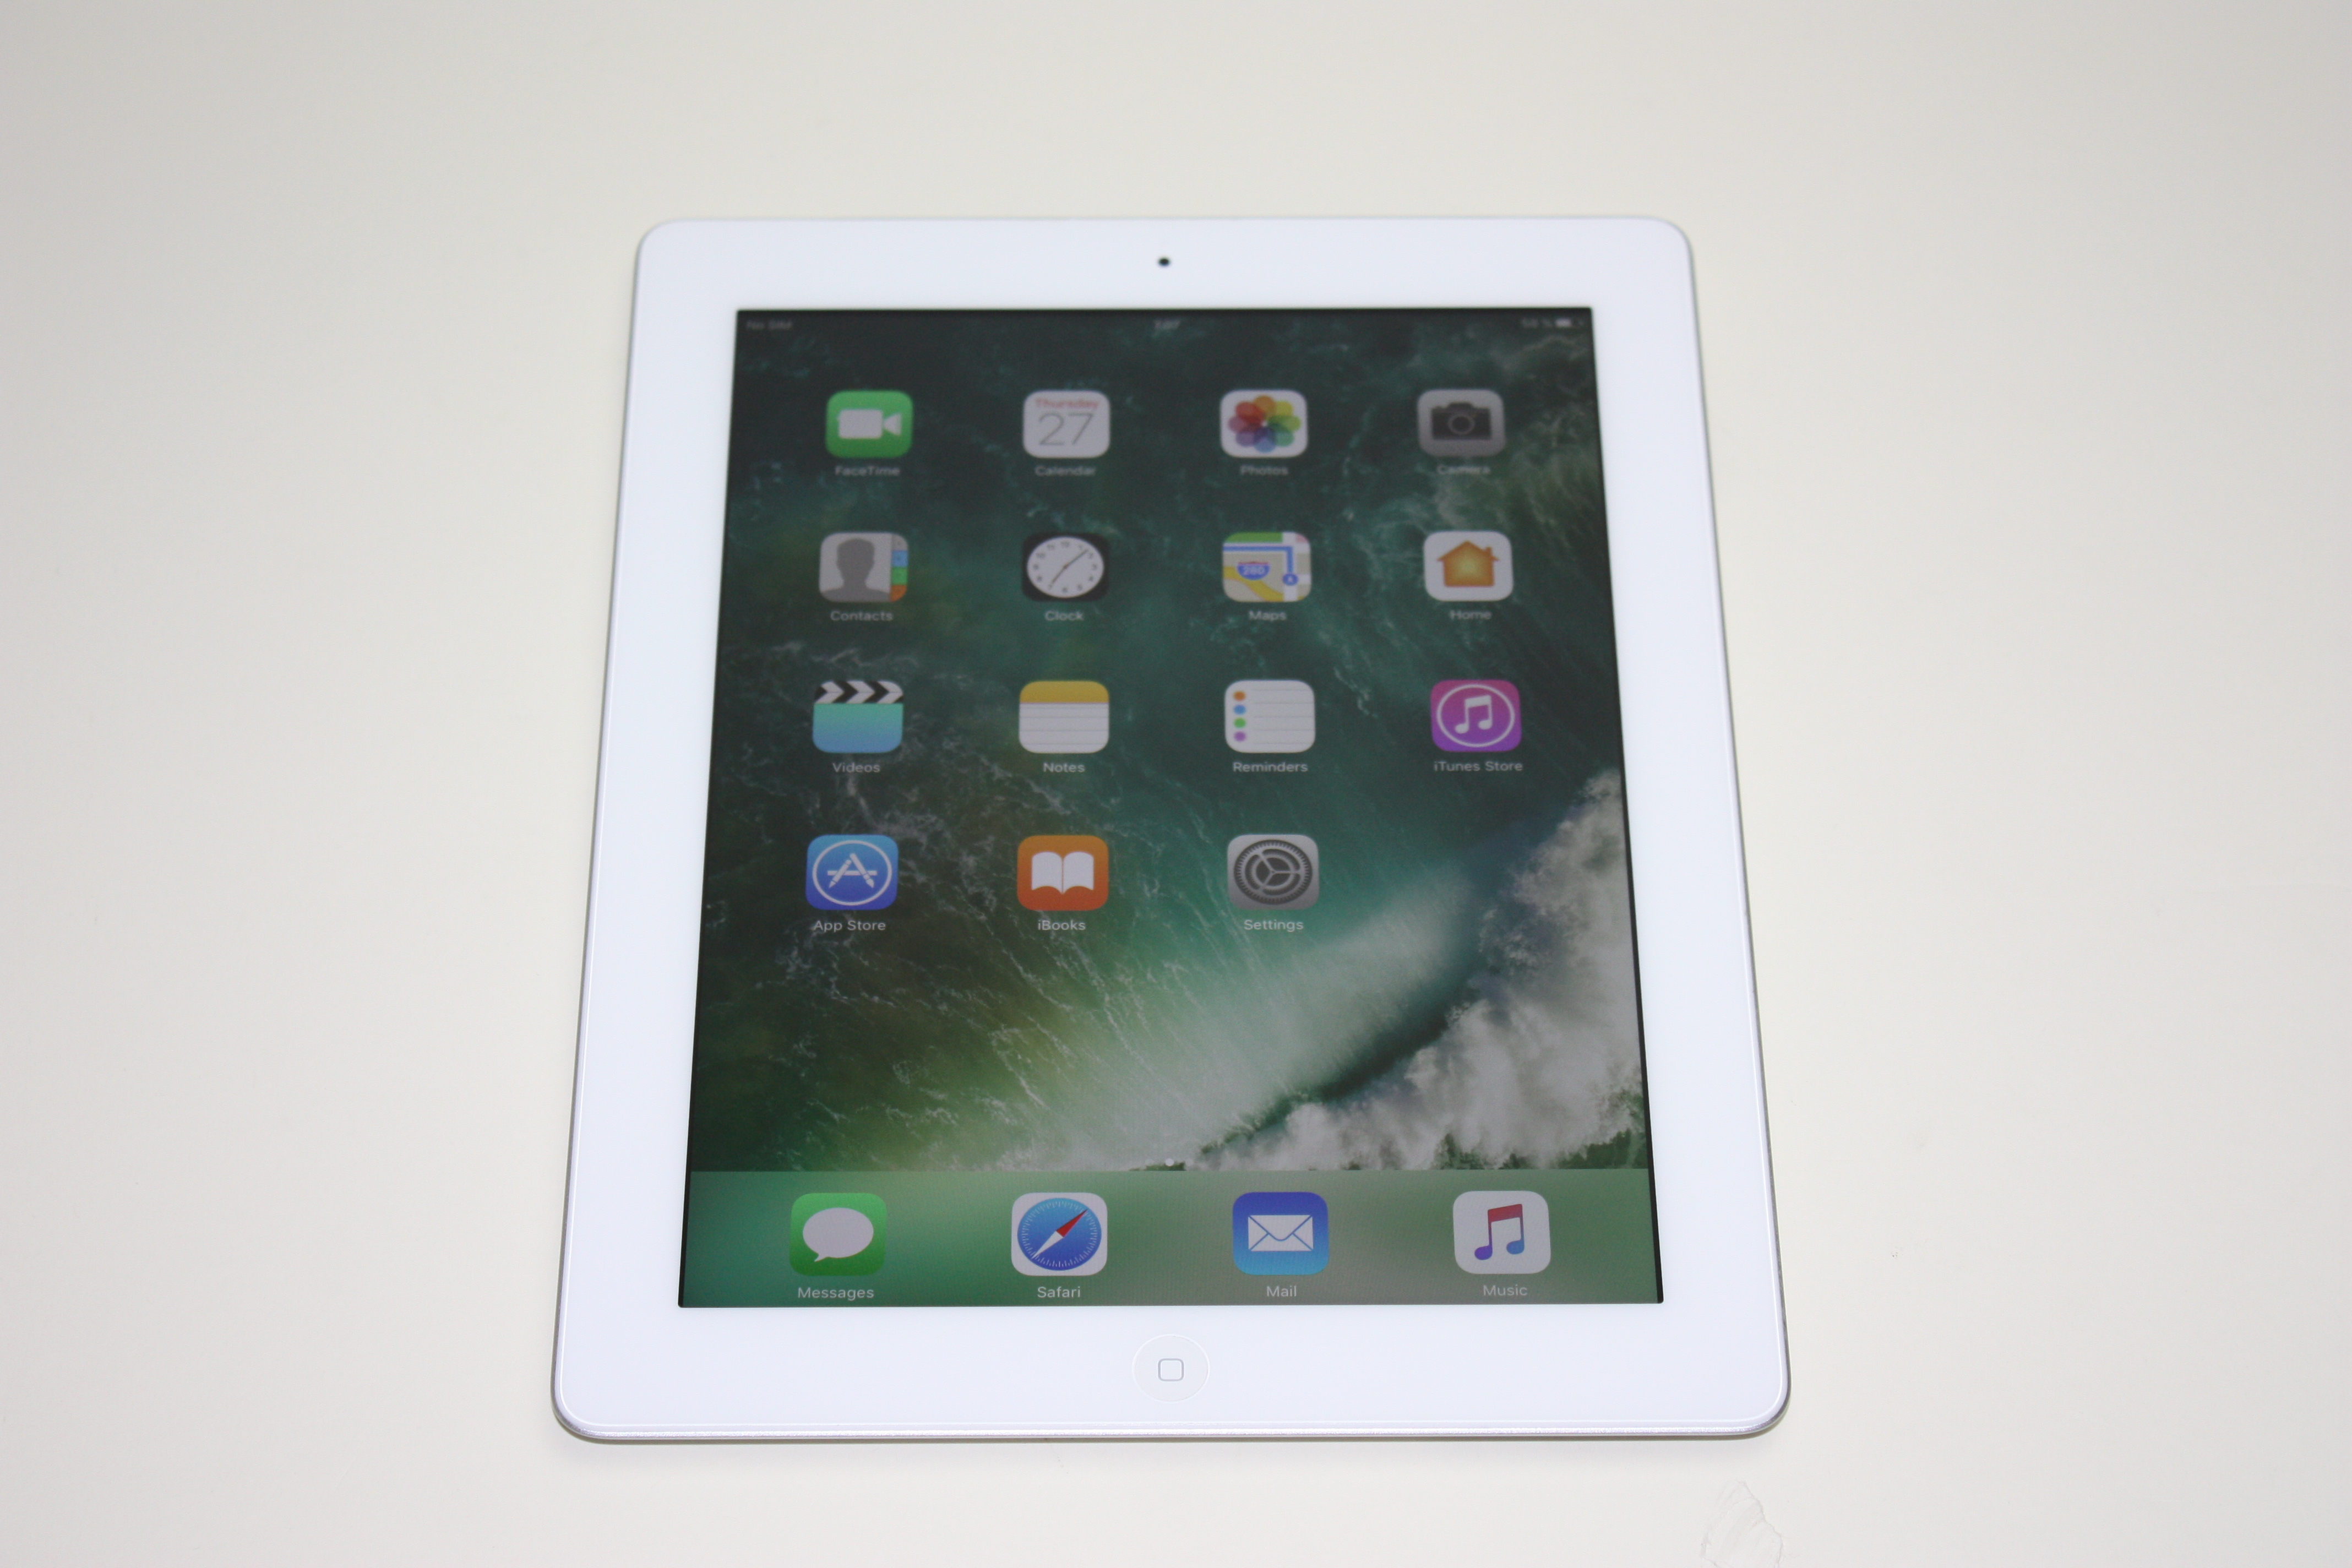 iPad 4th gen (Wi-Fi + 4G), 16 GB, Silver/White, Product age: 52 months, image 1